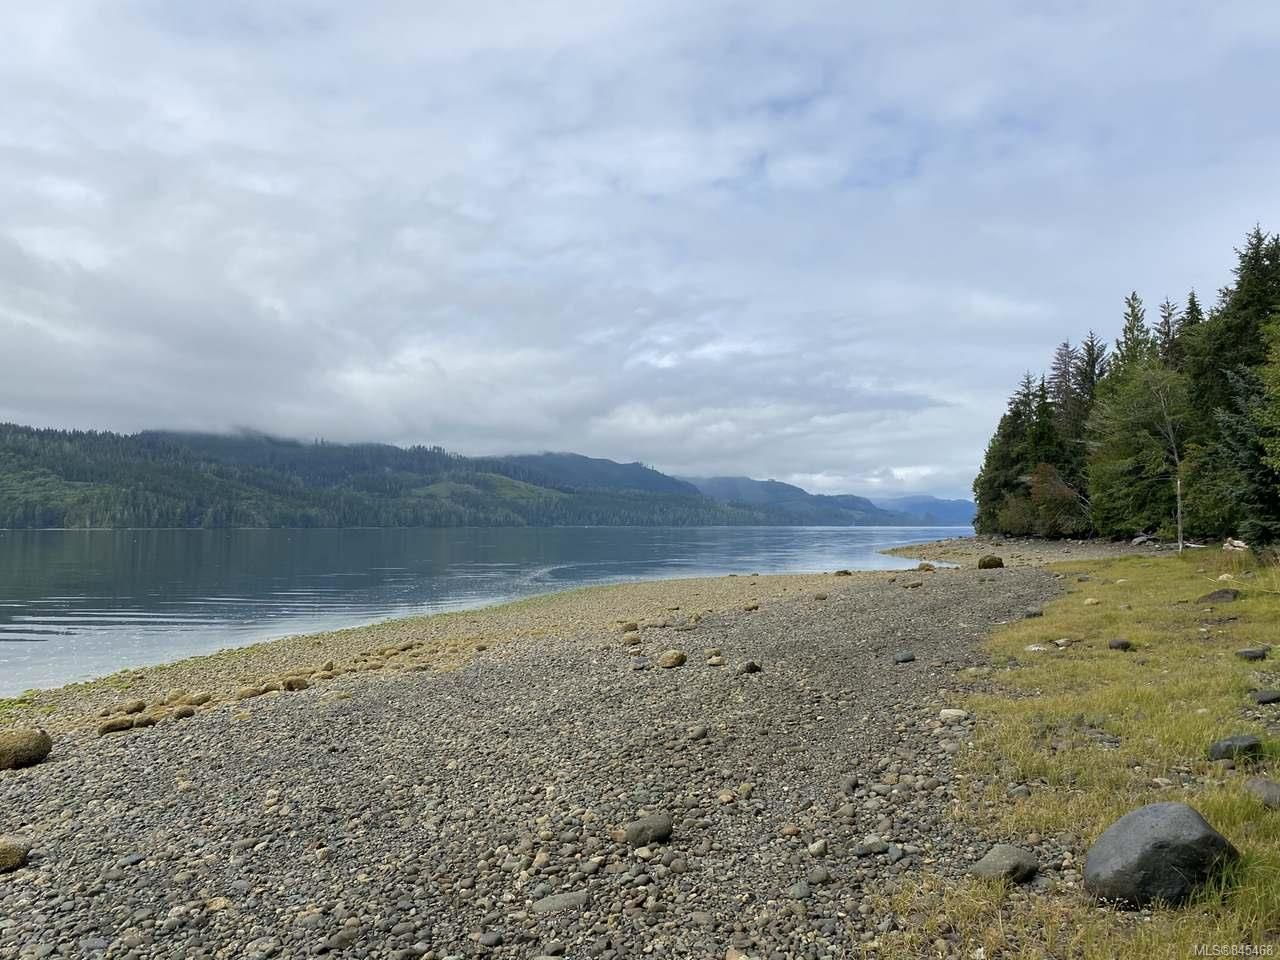 Photo 3: Photos: 0 Harbour Rd in PORT HARDY: NI Port Hardy Land for sale (North Island)  : MLS®# 845468